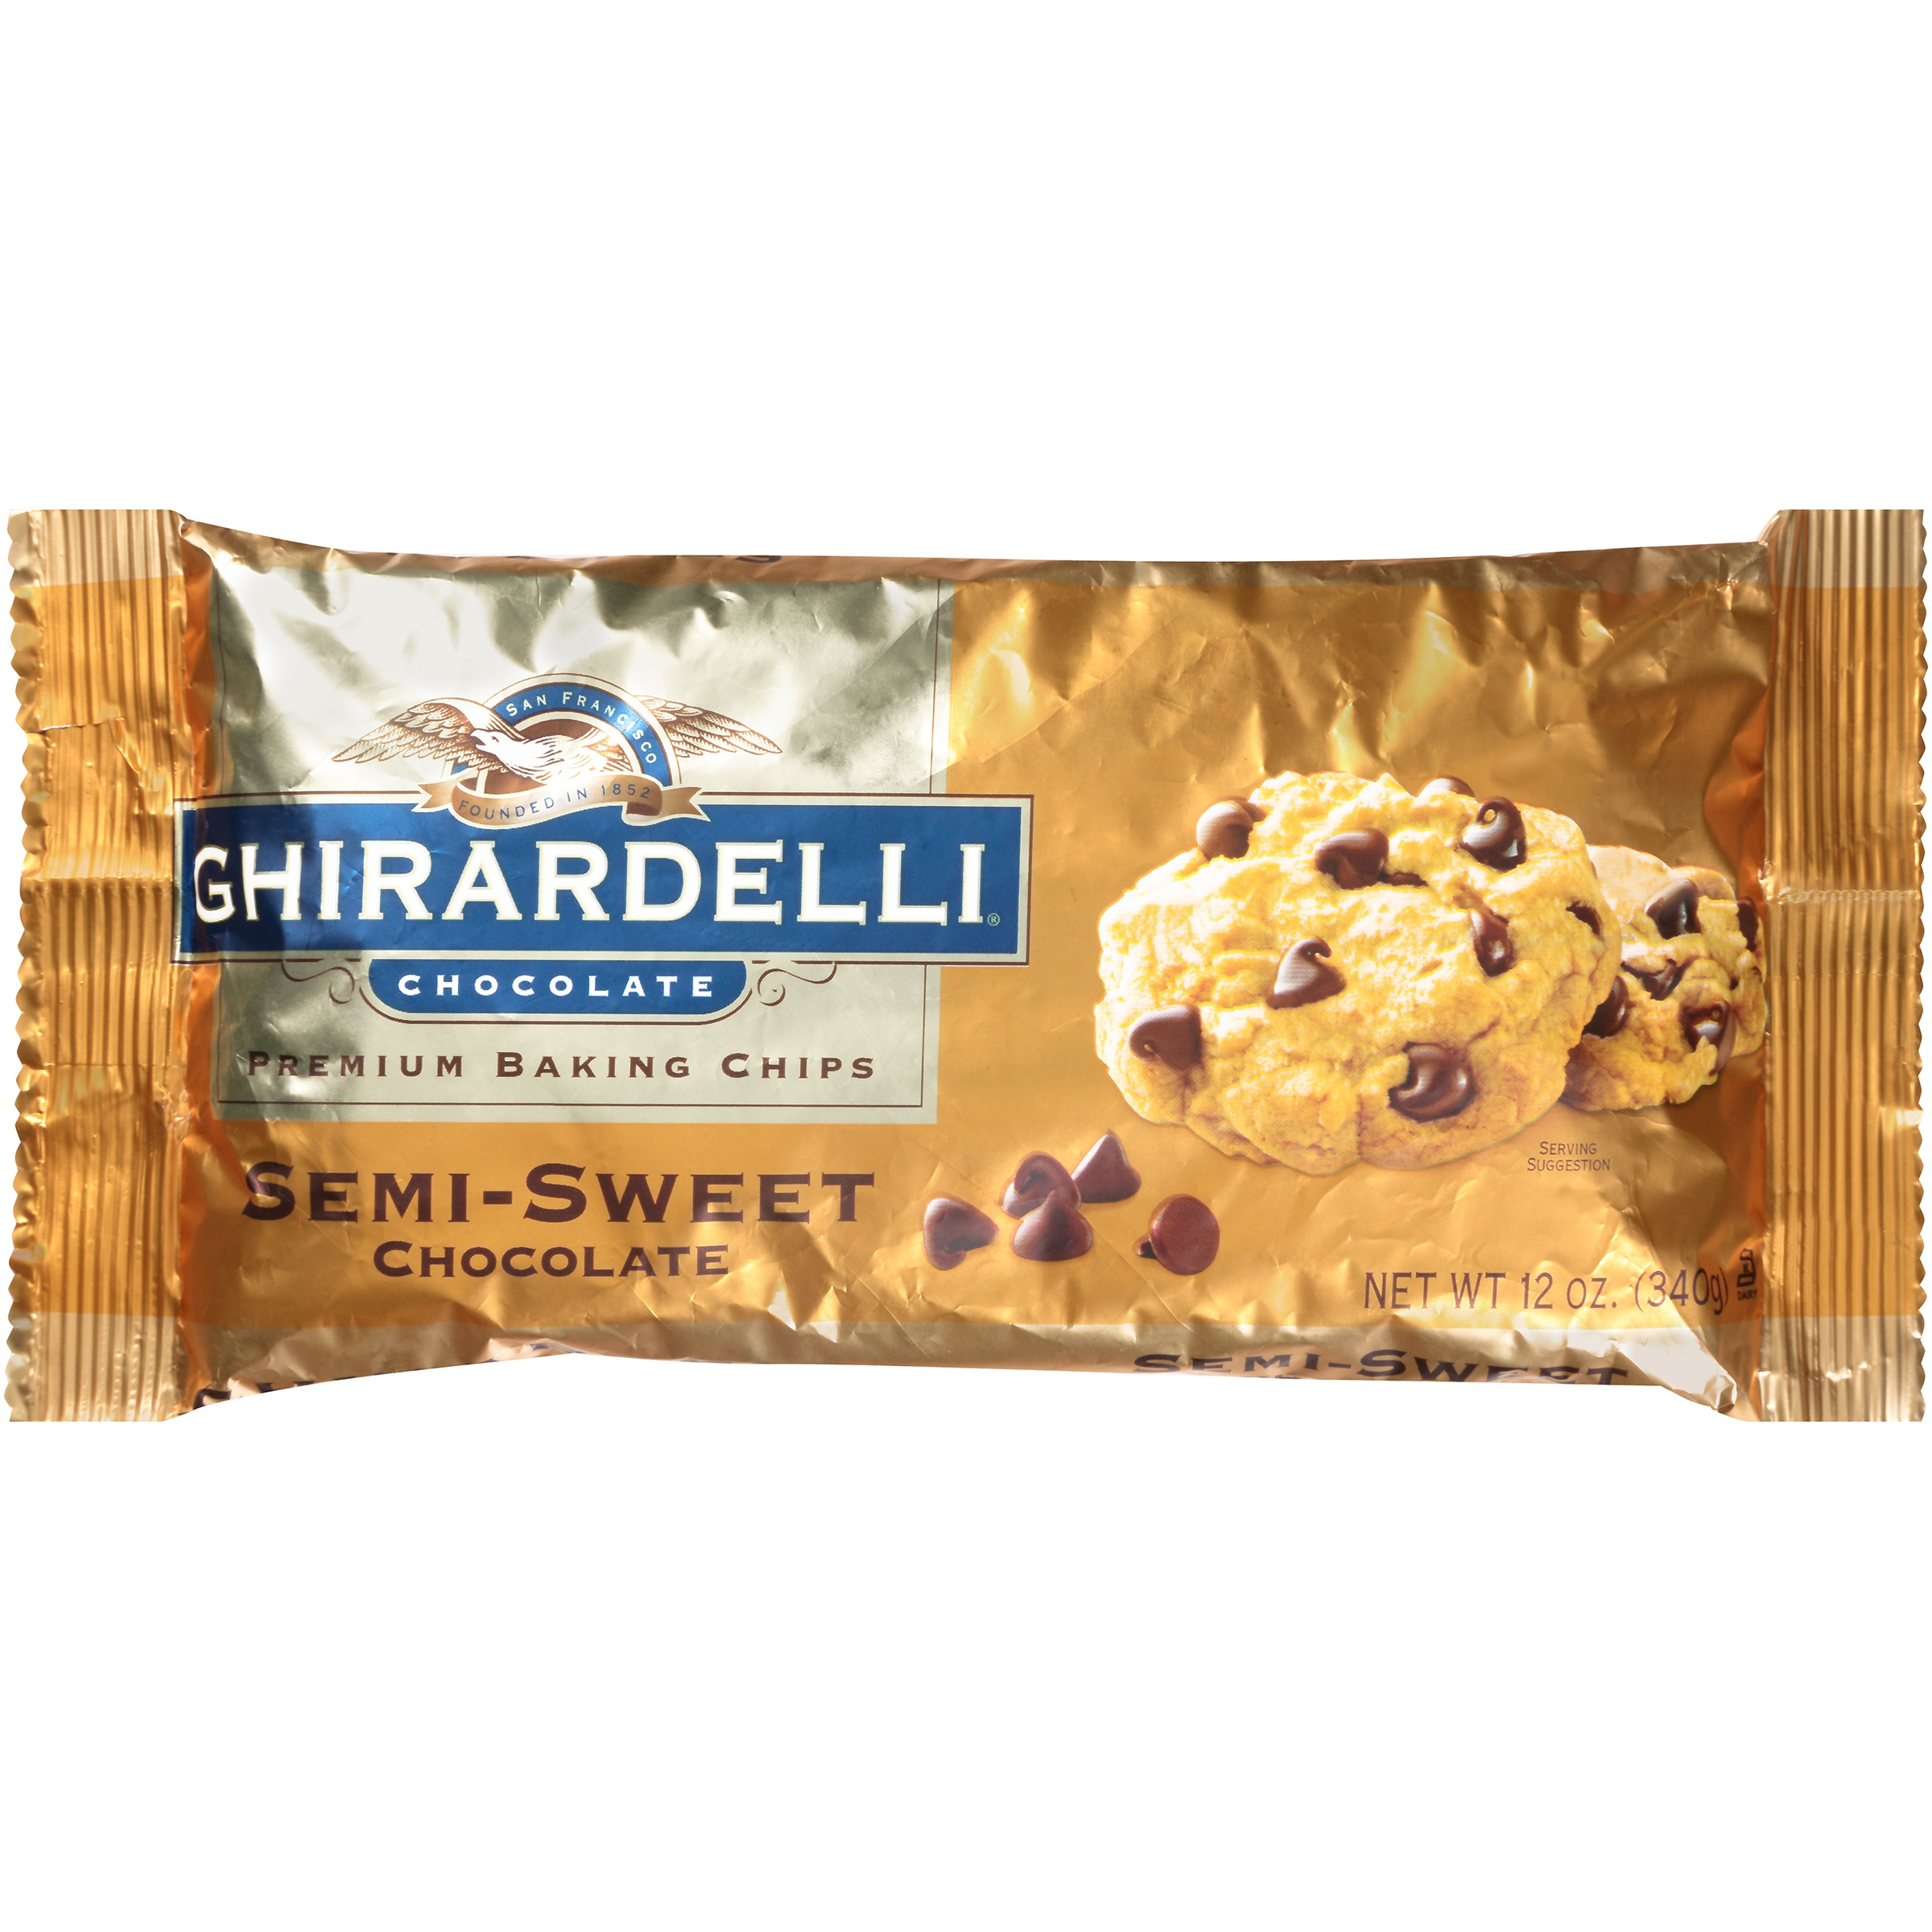 Ghirardelli Chocolate Semi-Sweet Chocolate Baking Chips, 12 oz by Ghirardelli Chocolate Company